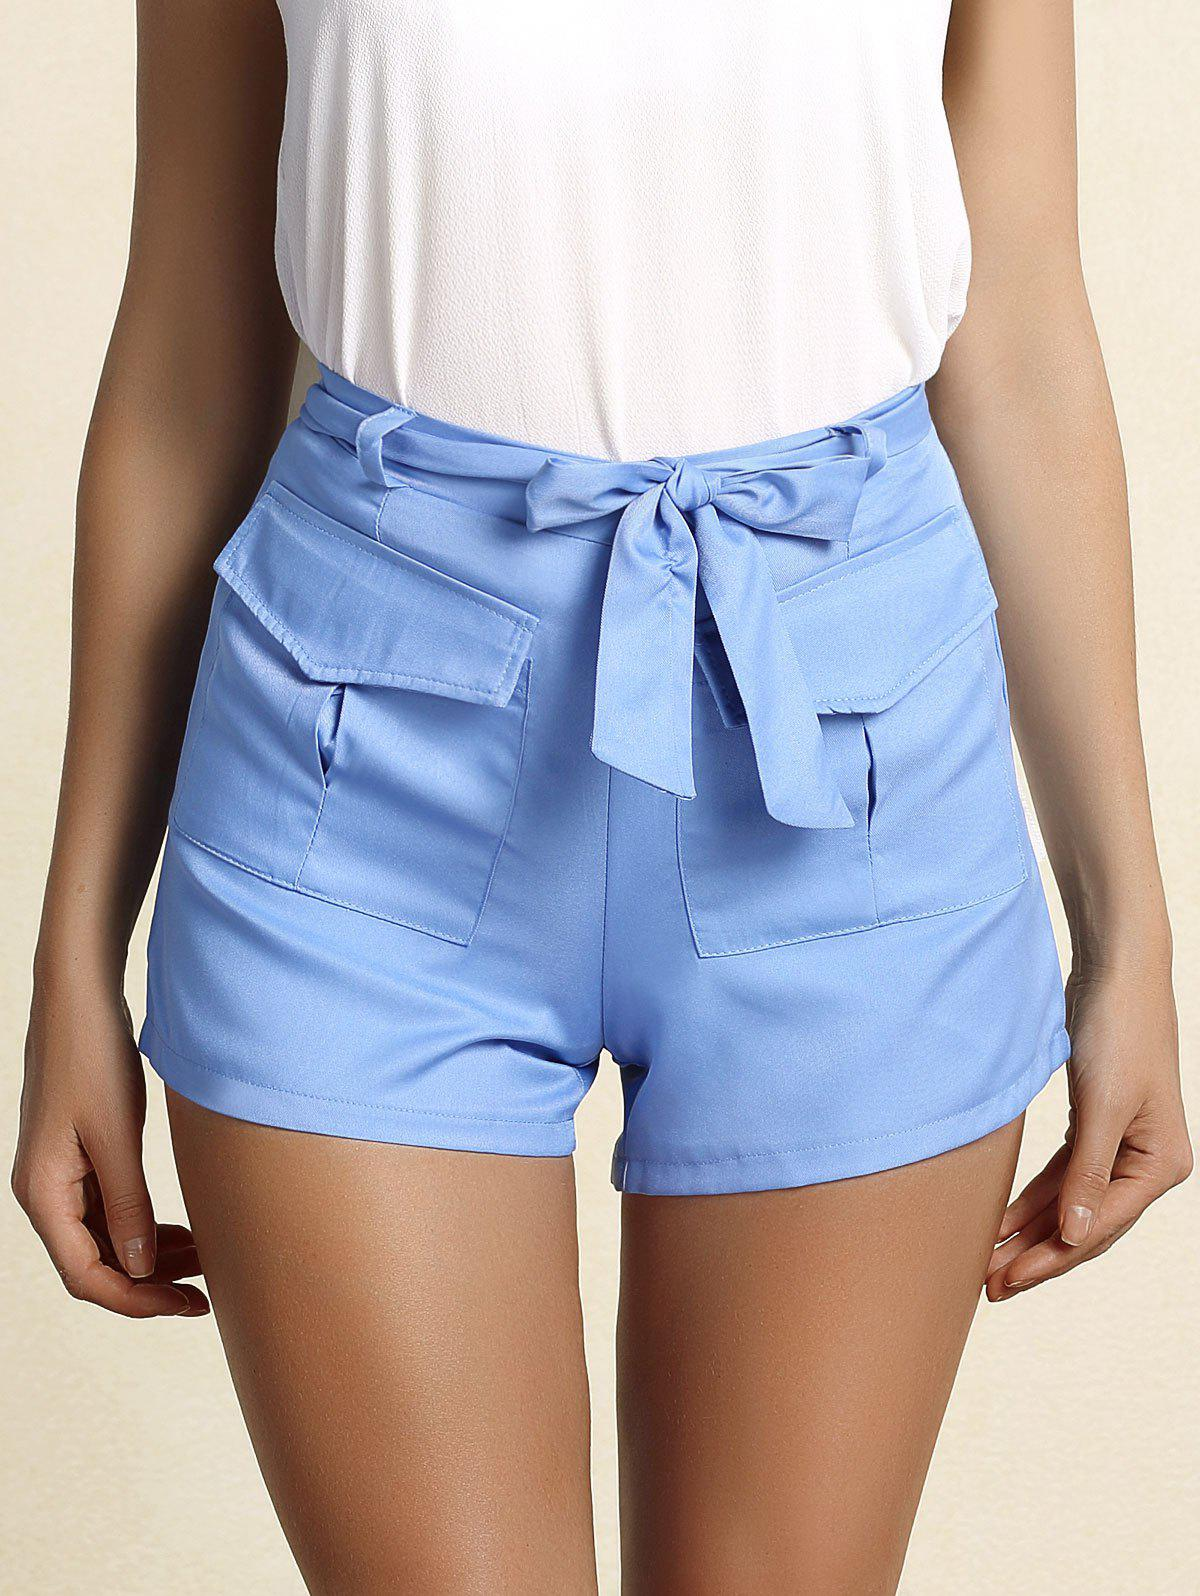 Trendy Women's Belted Blue Straight Leg Shorts - BLUE S